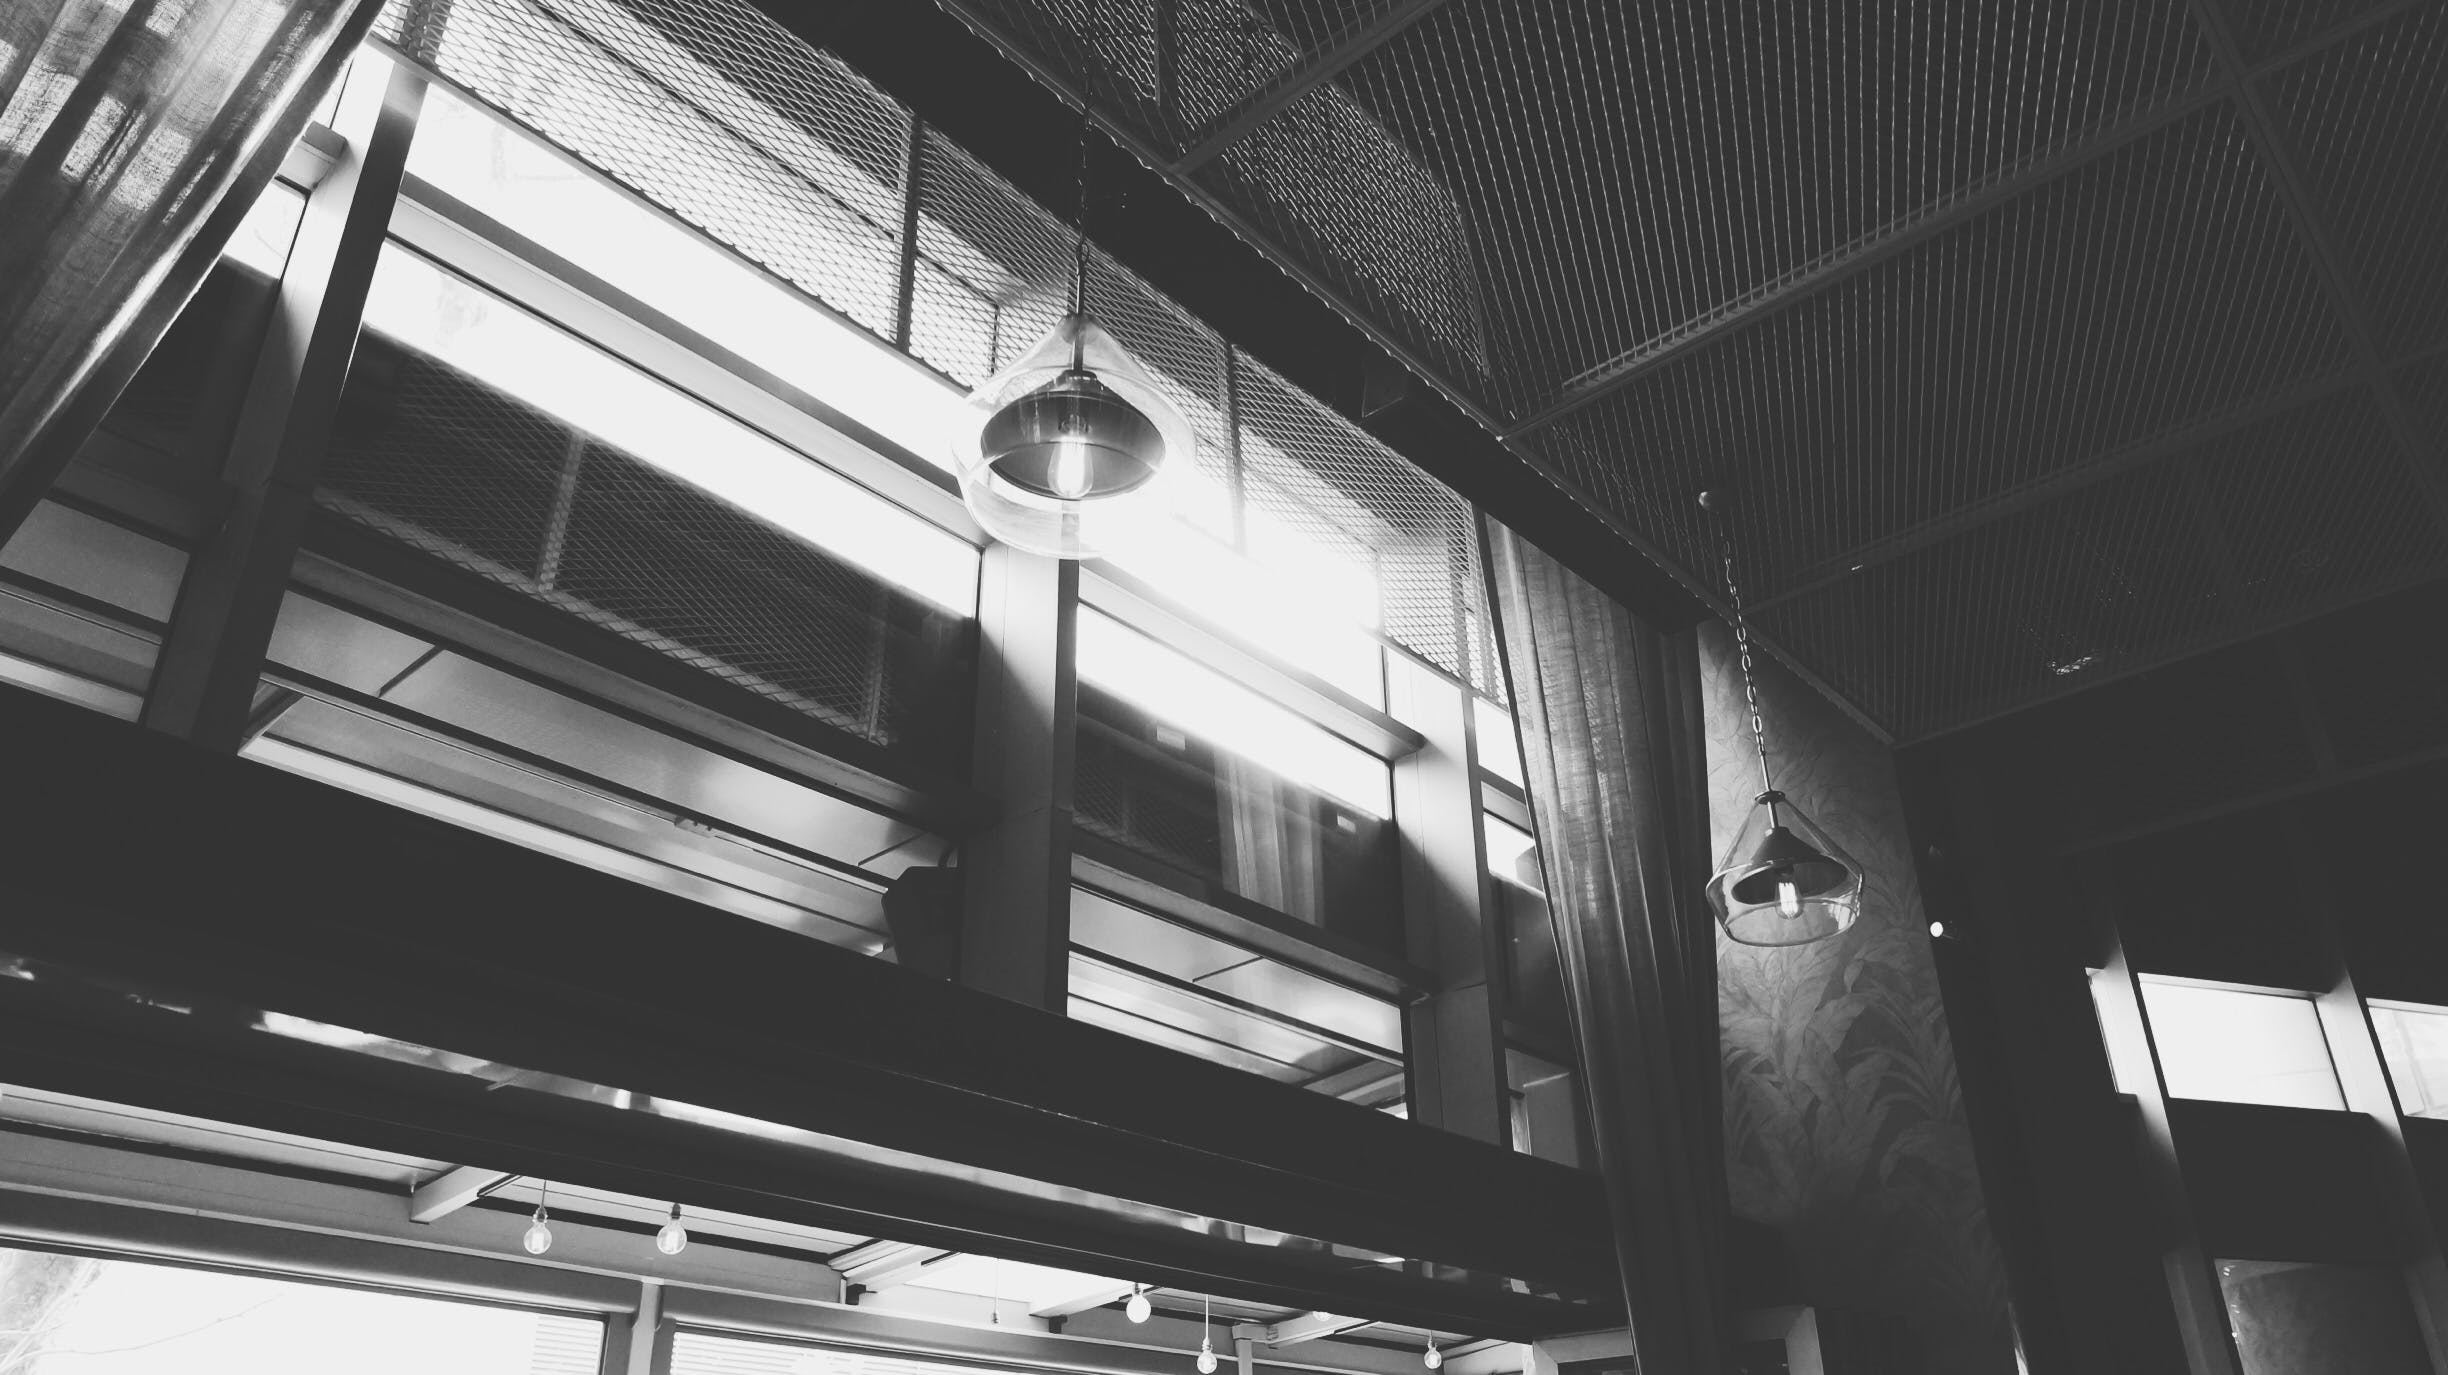 Grayscale Photo of Hanged Ceiling Lamp Inside the Building